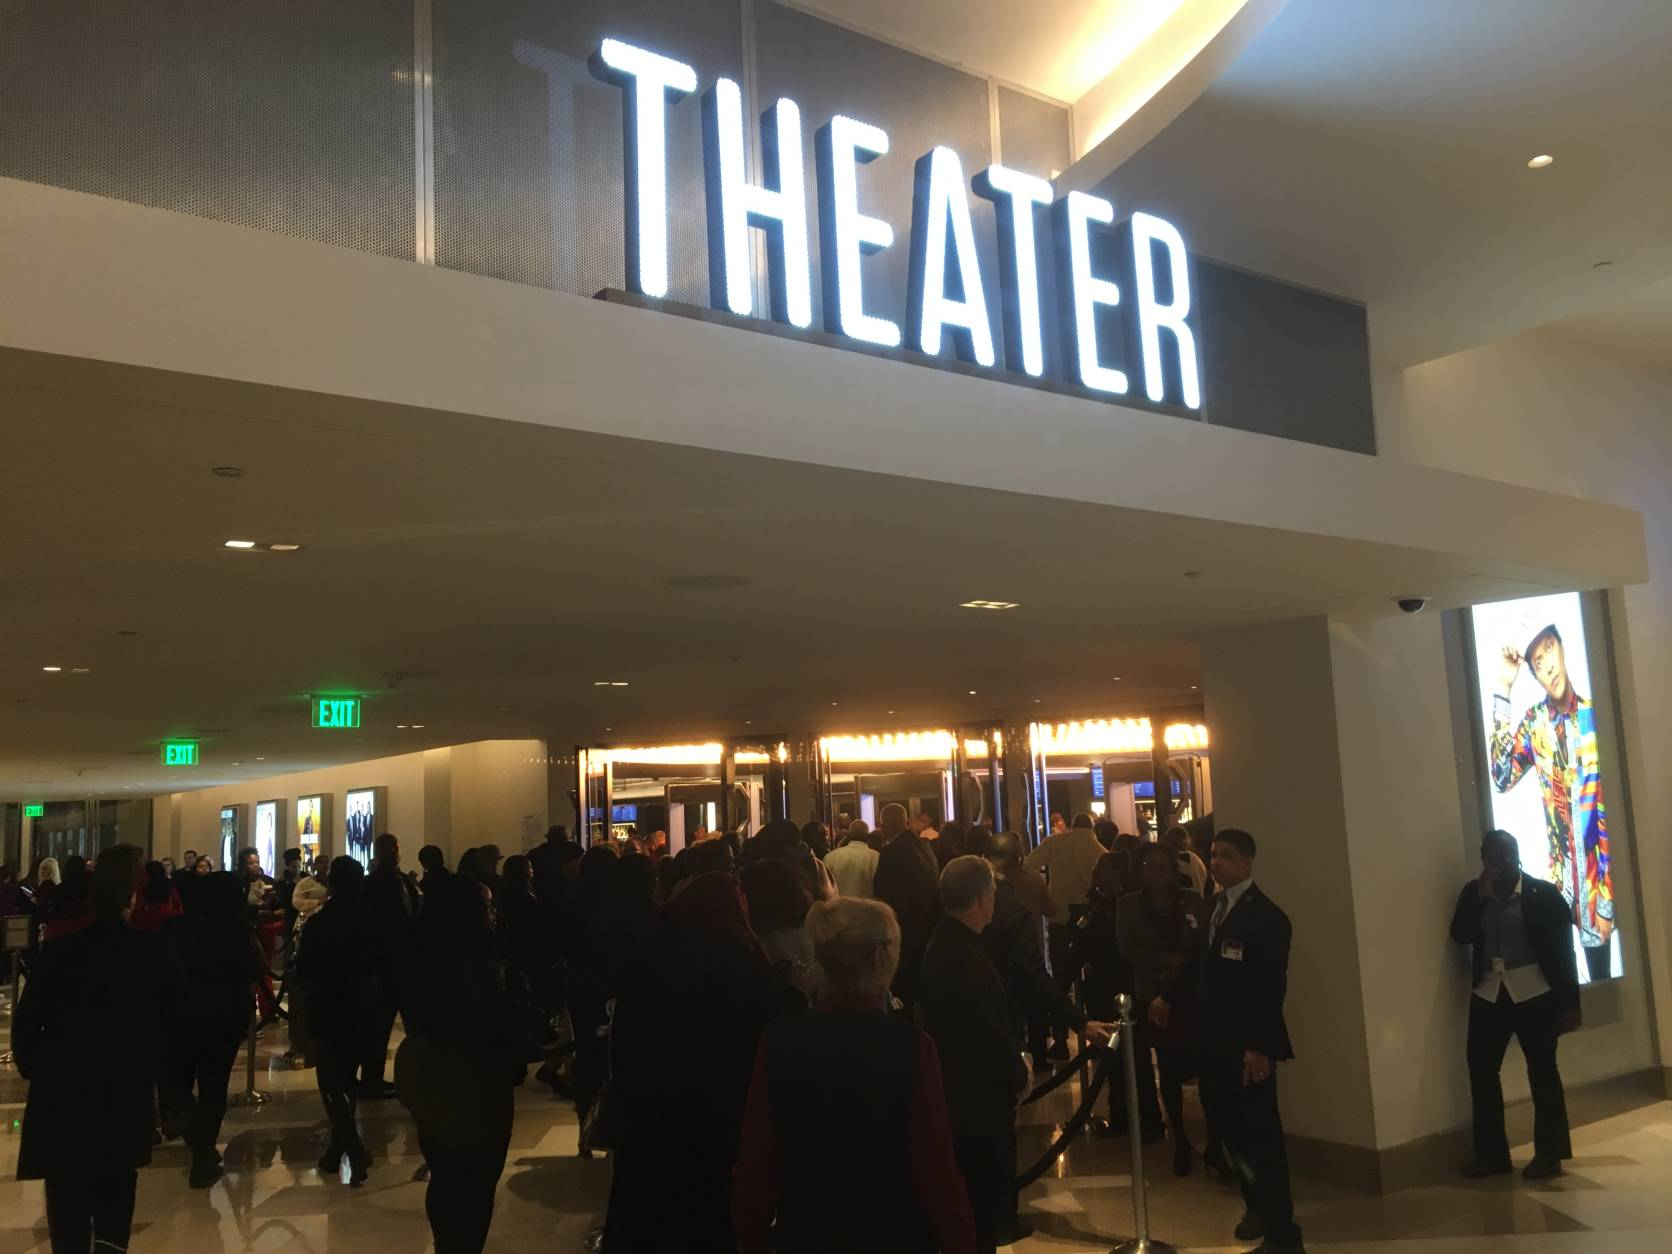 The entrance to the Theater at the MGM National Harbor. (WTOP/Mike Murillo)